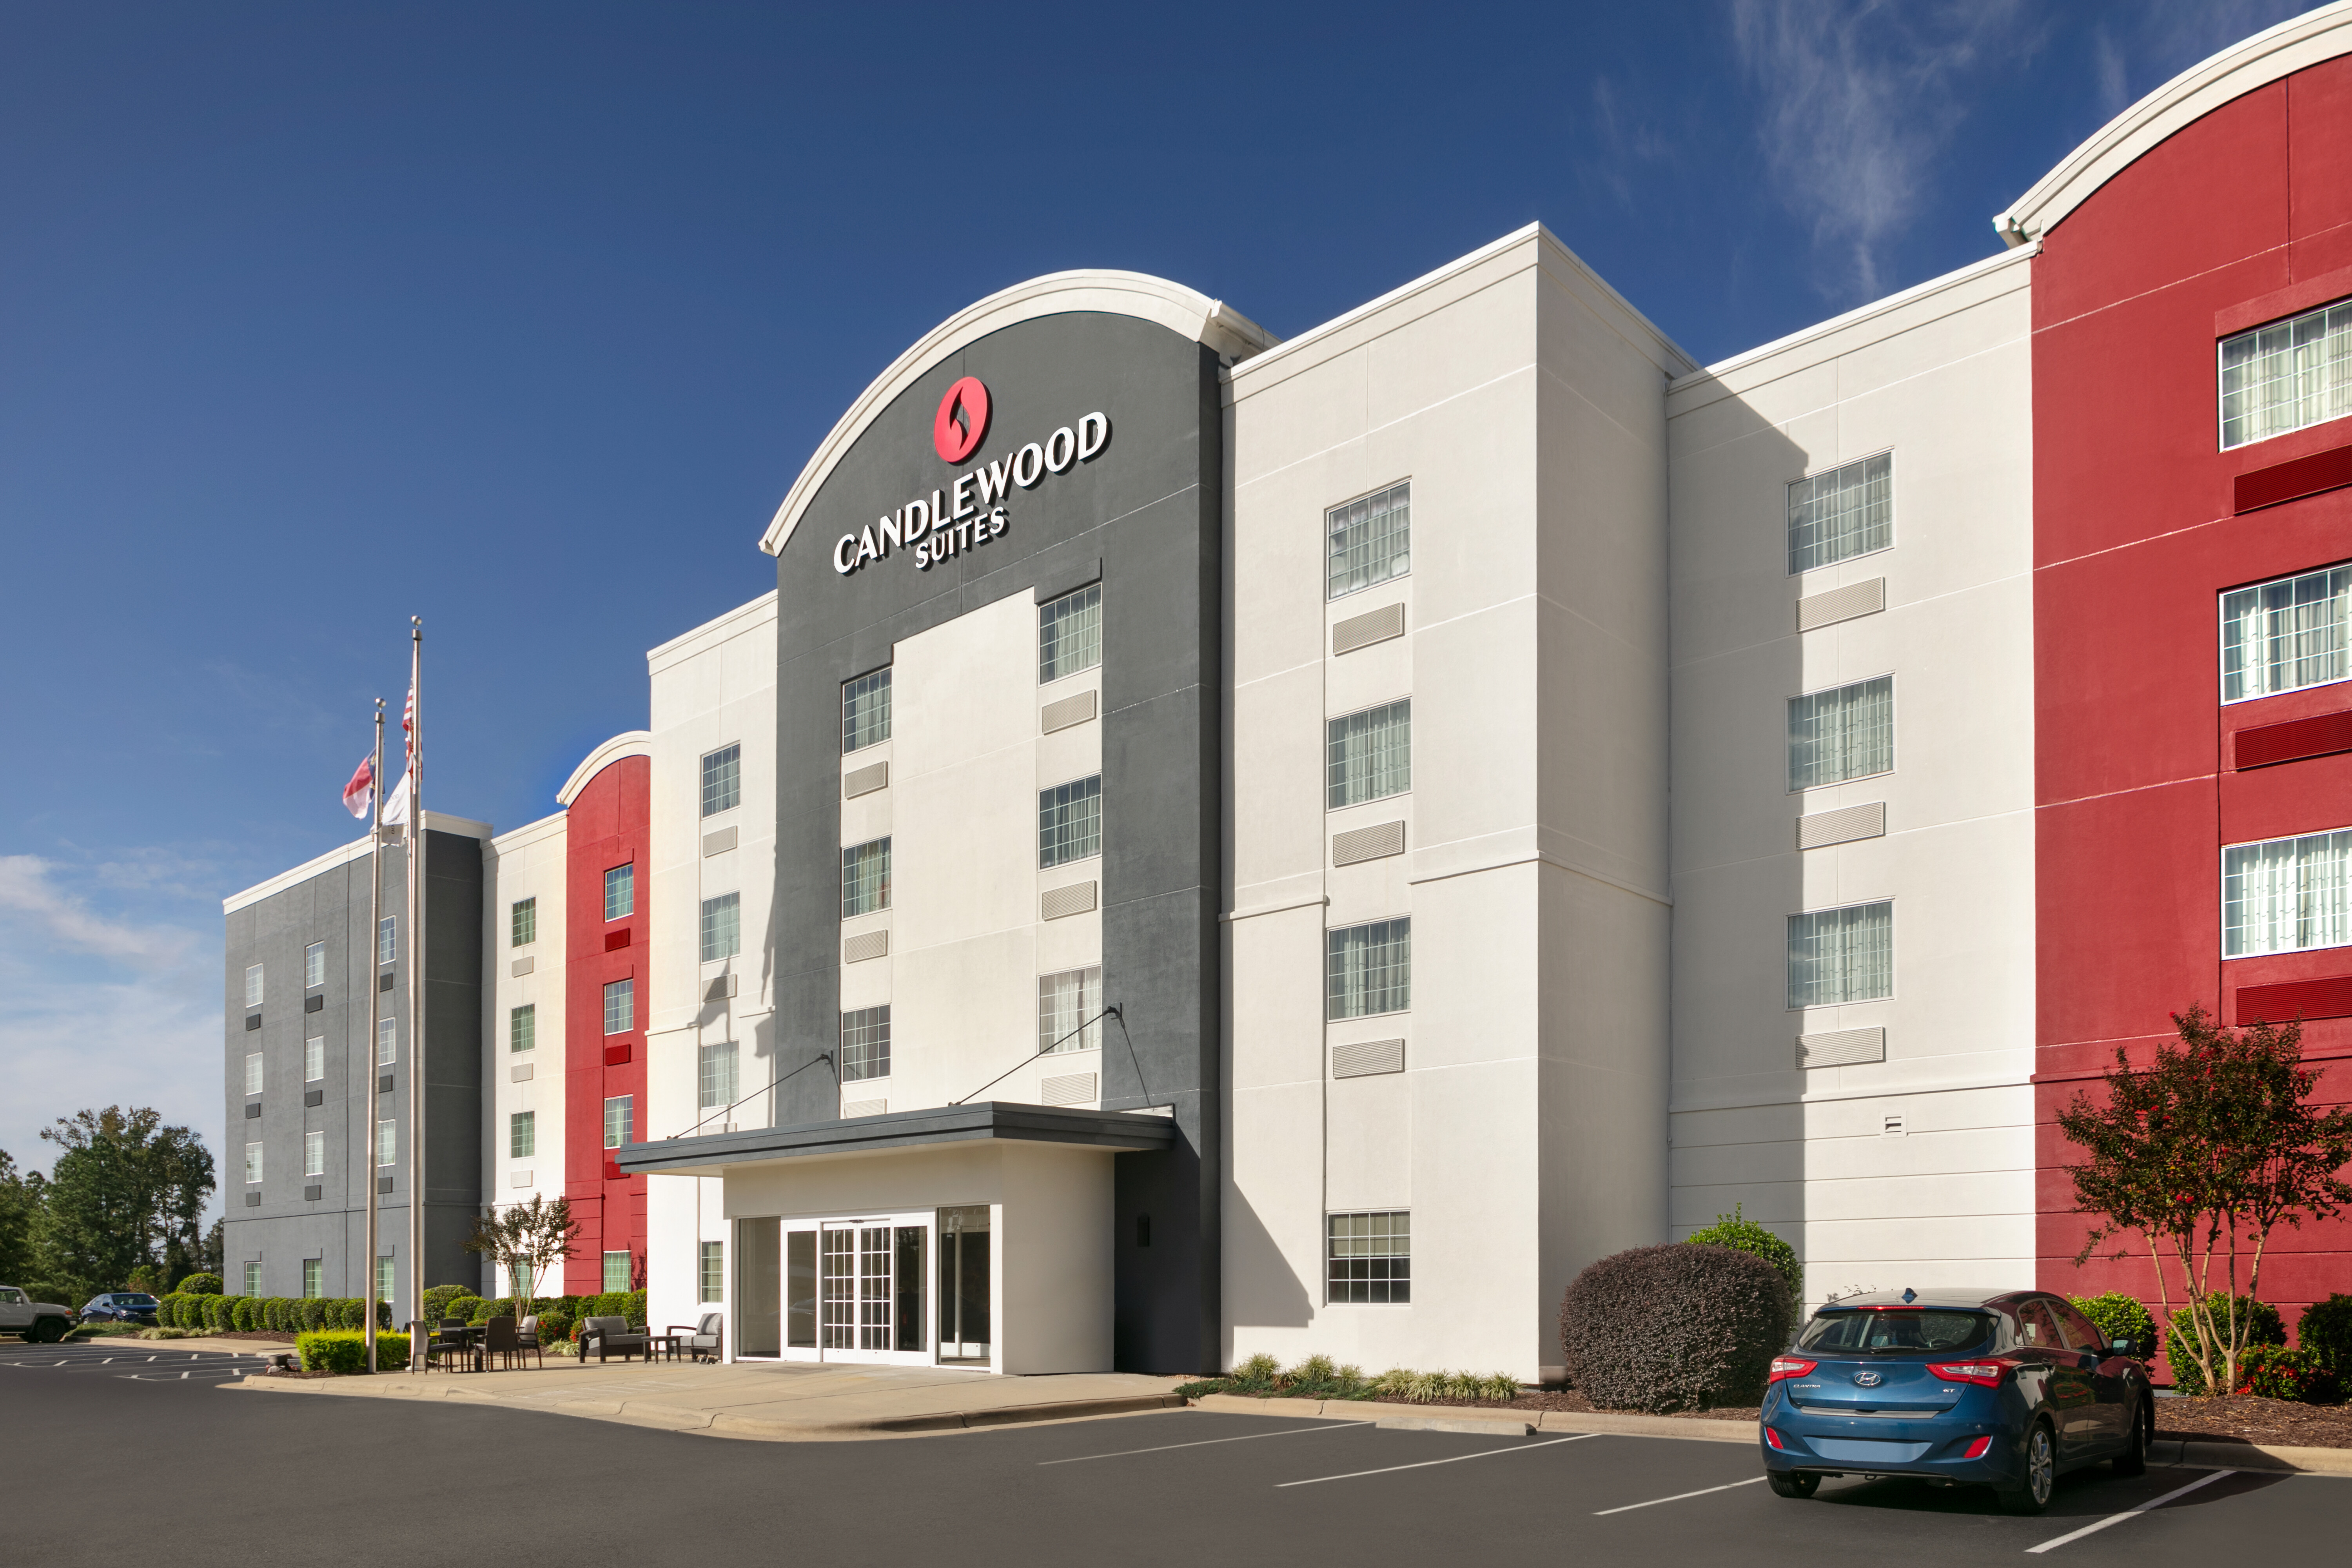 faysq candlewood suites fayetteville fort bragg exterior b 02